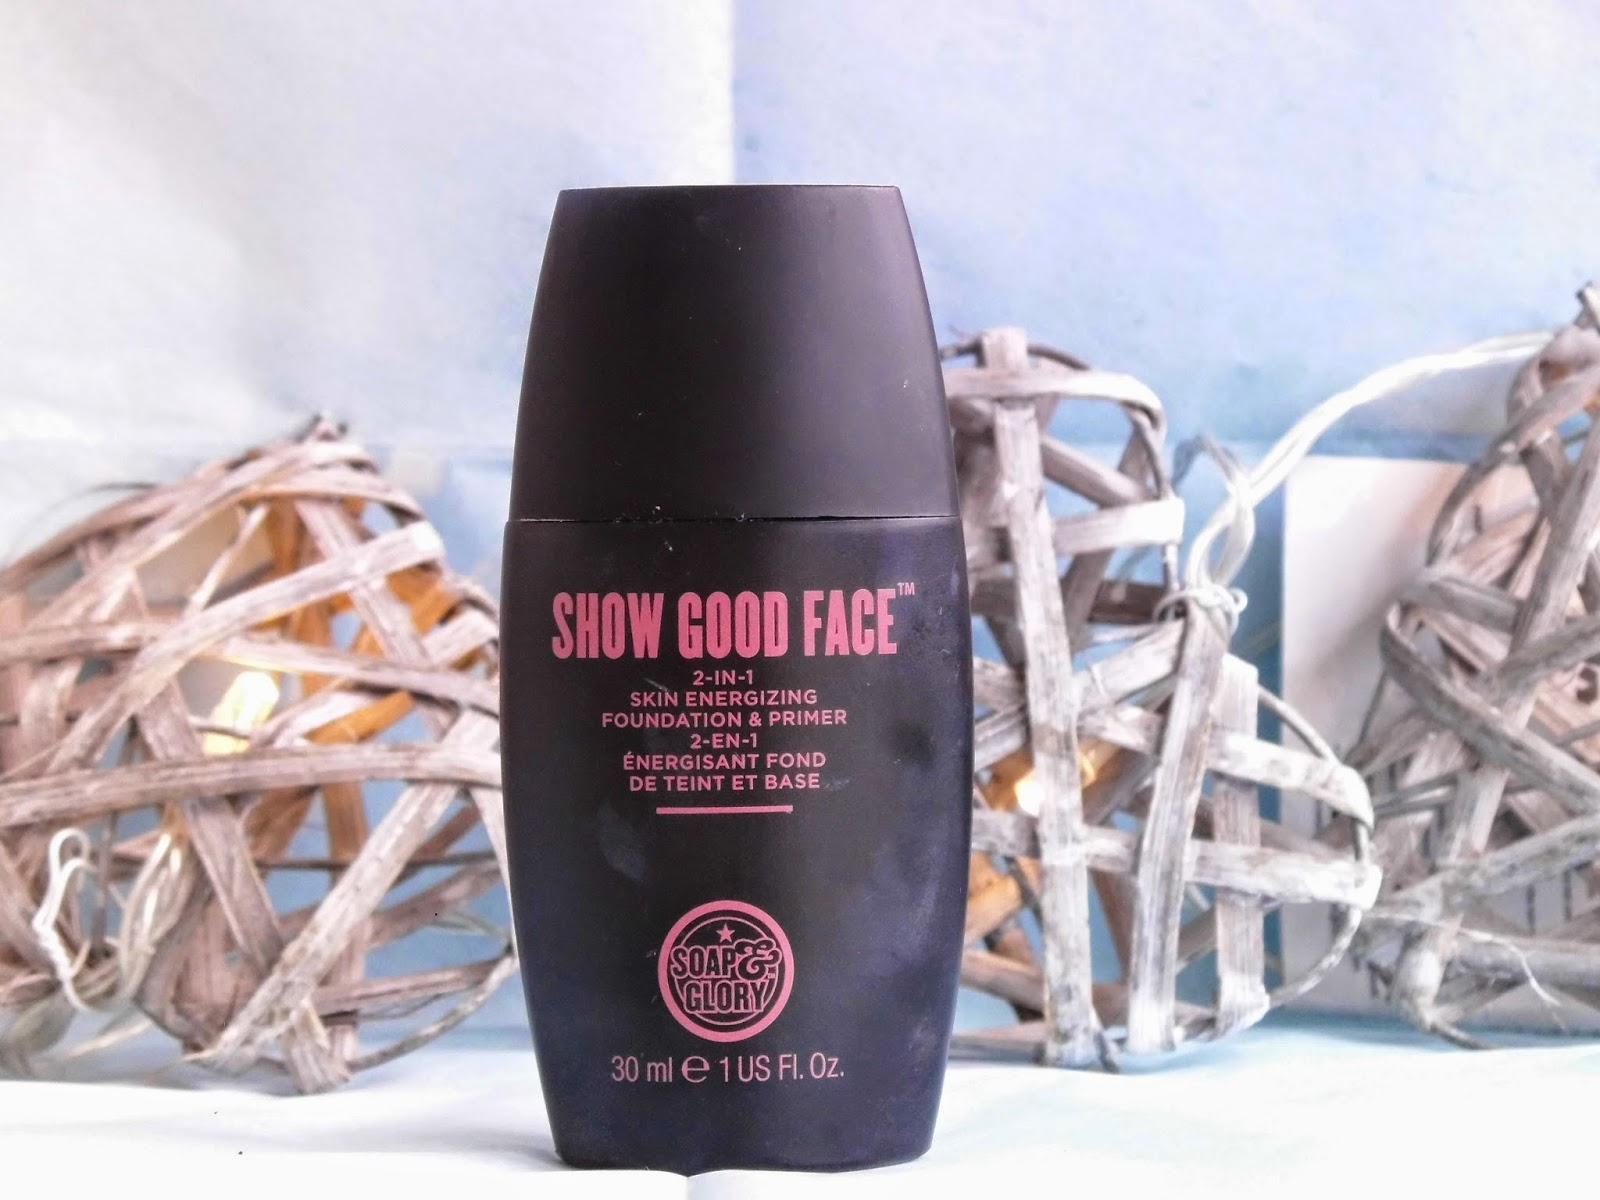 61f83e983c8 Soap and Glory 'Show Good Face 2 in 1 Skin Energizing Foundation & Primer'